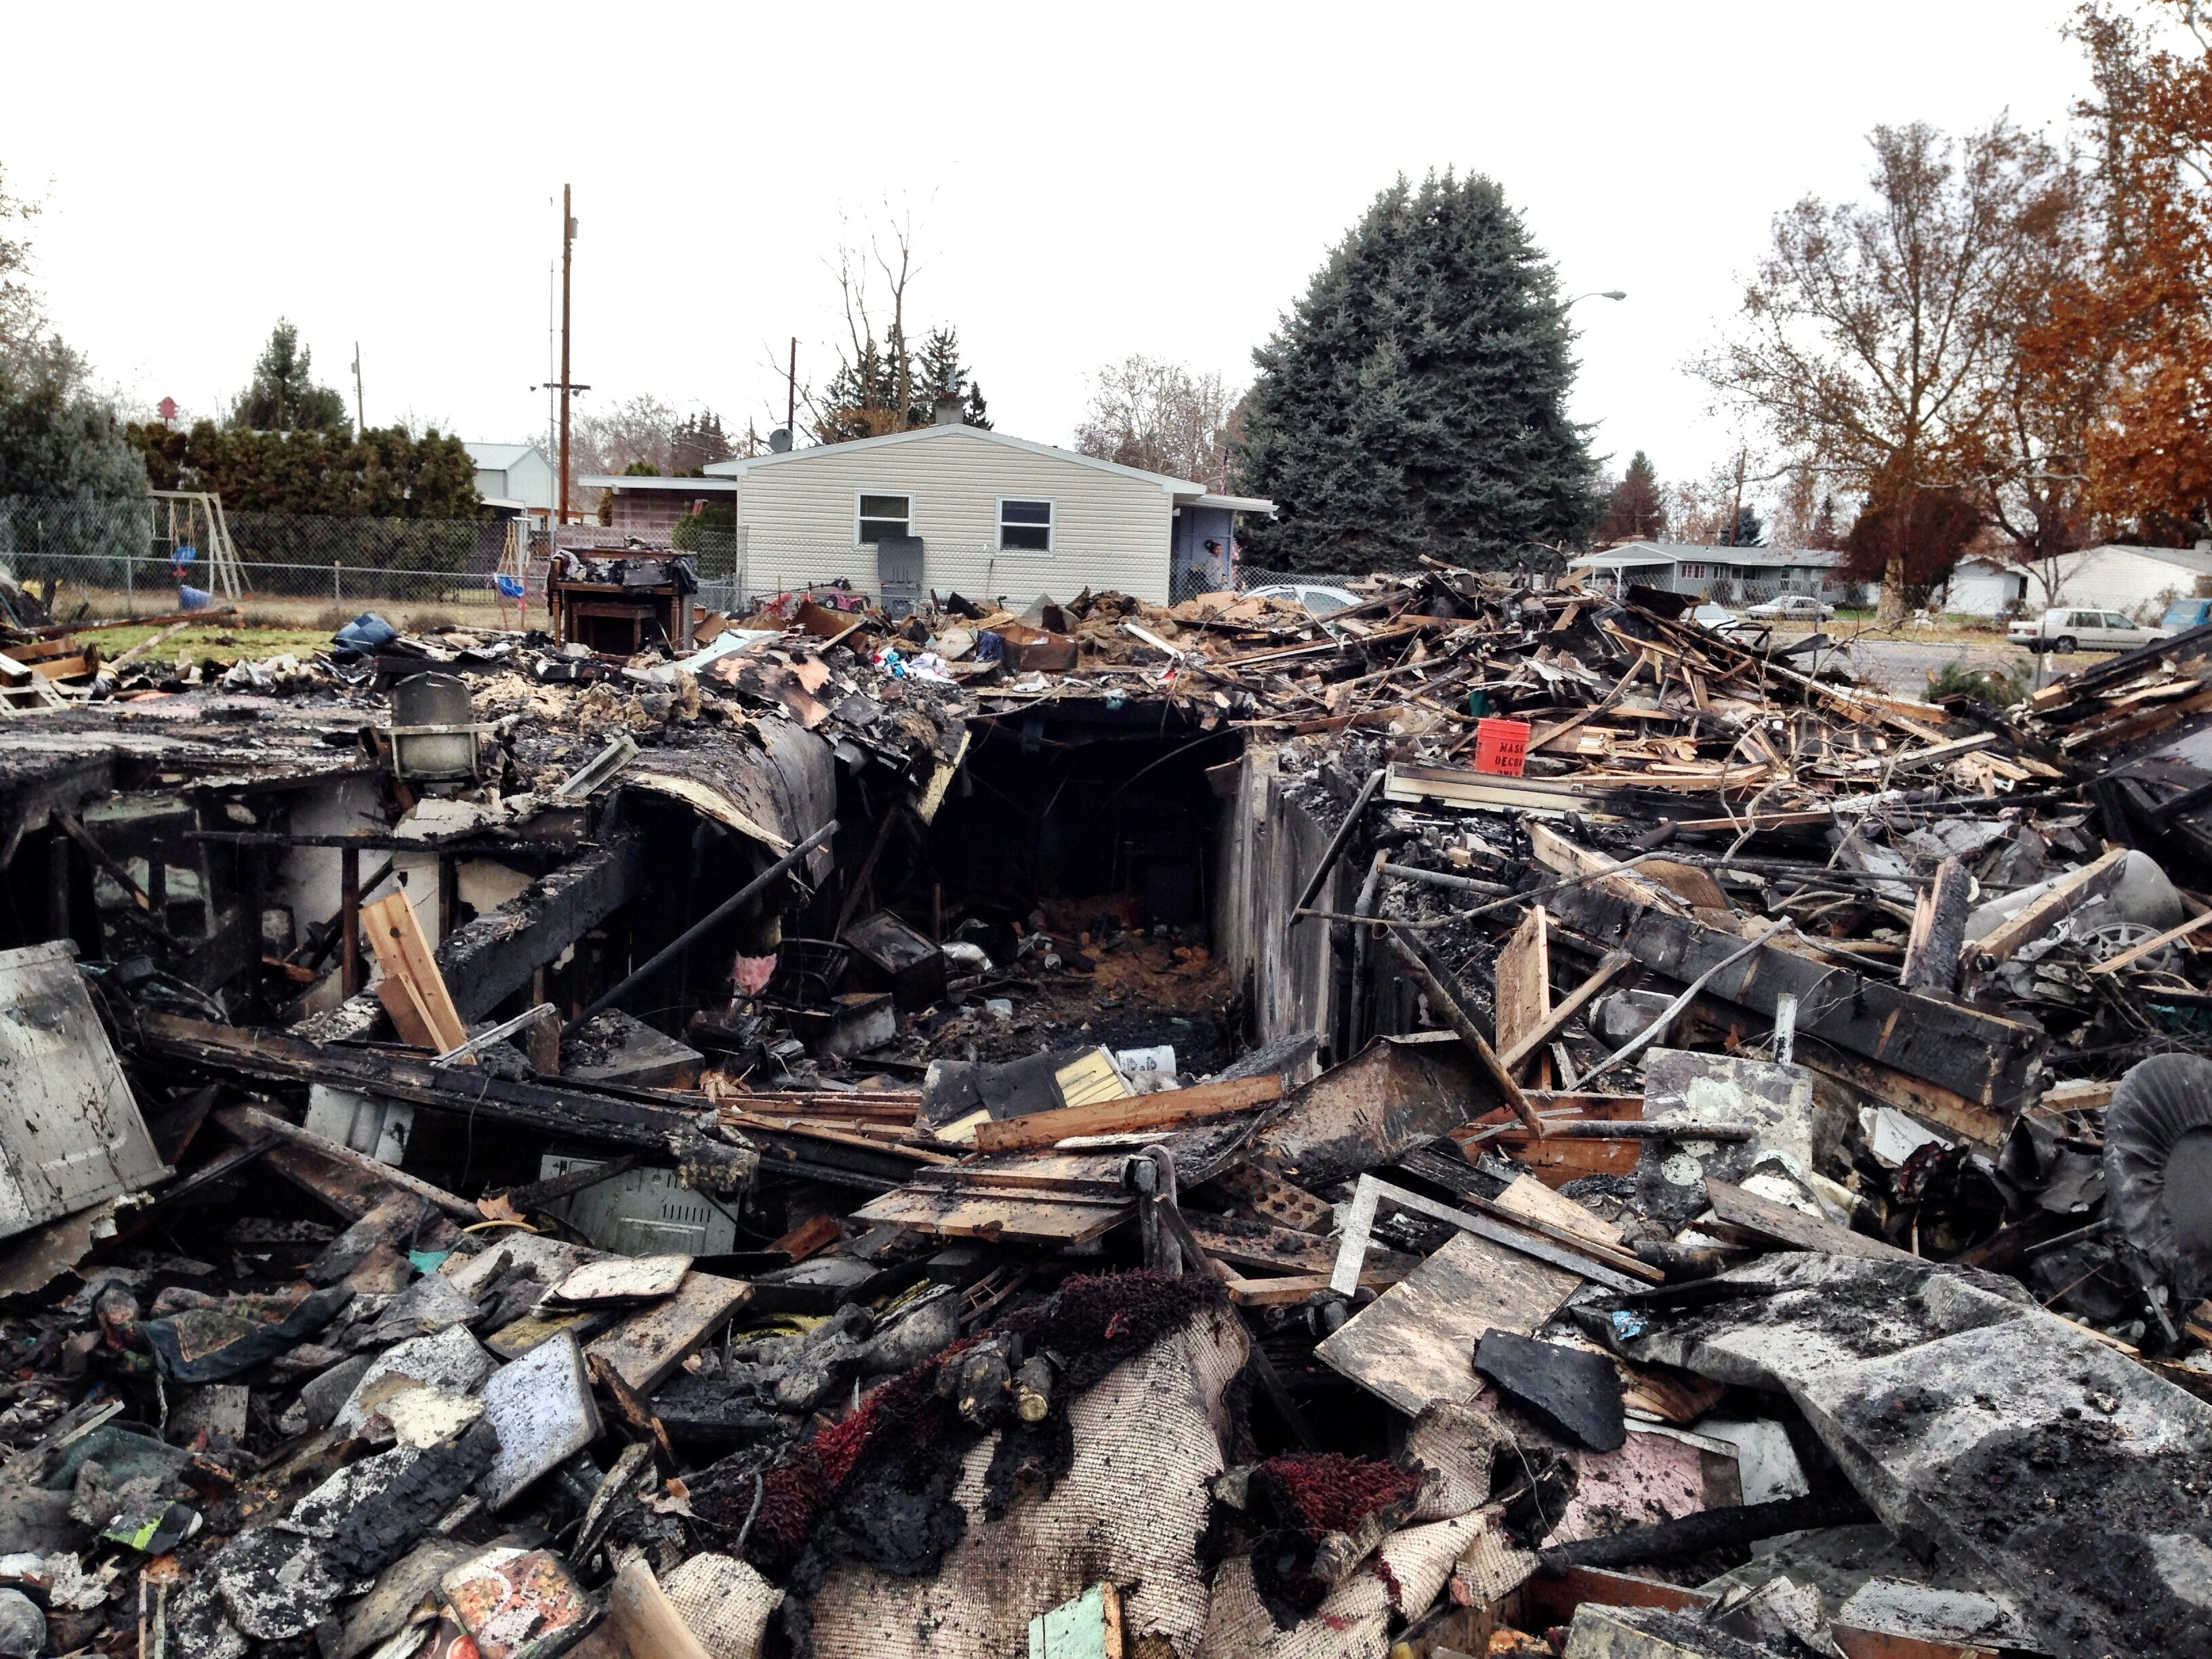 Crews were on Symons Street all Saturday long. After the fire was completely out, which took twelve hours in total, the site was bulldozed and the contents of the home scattered.